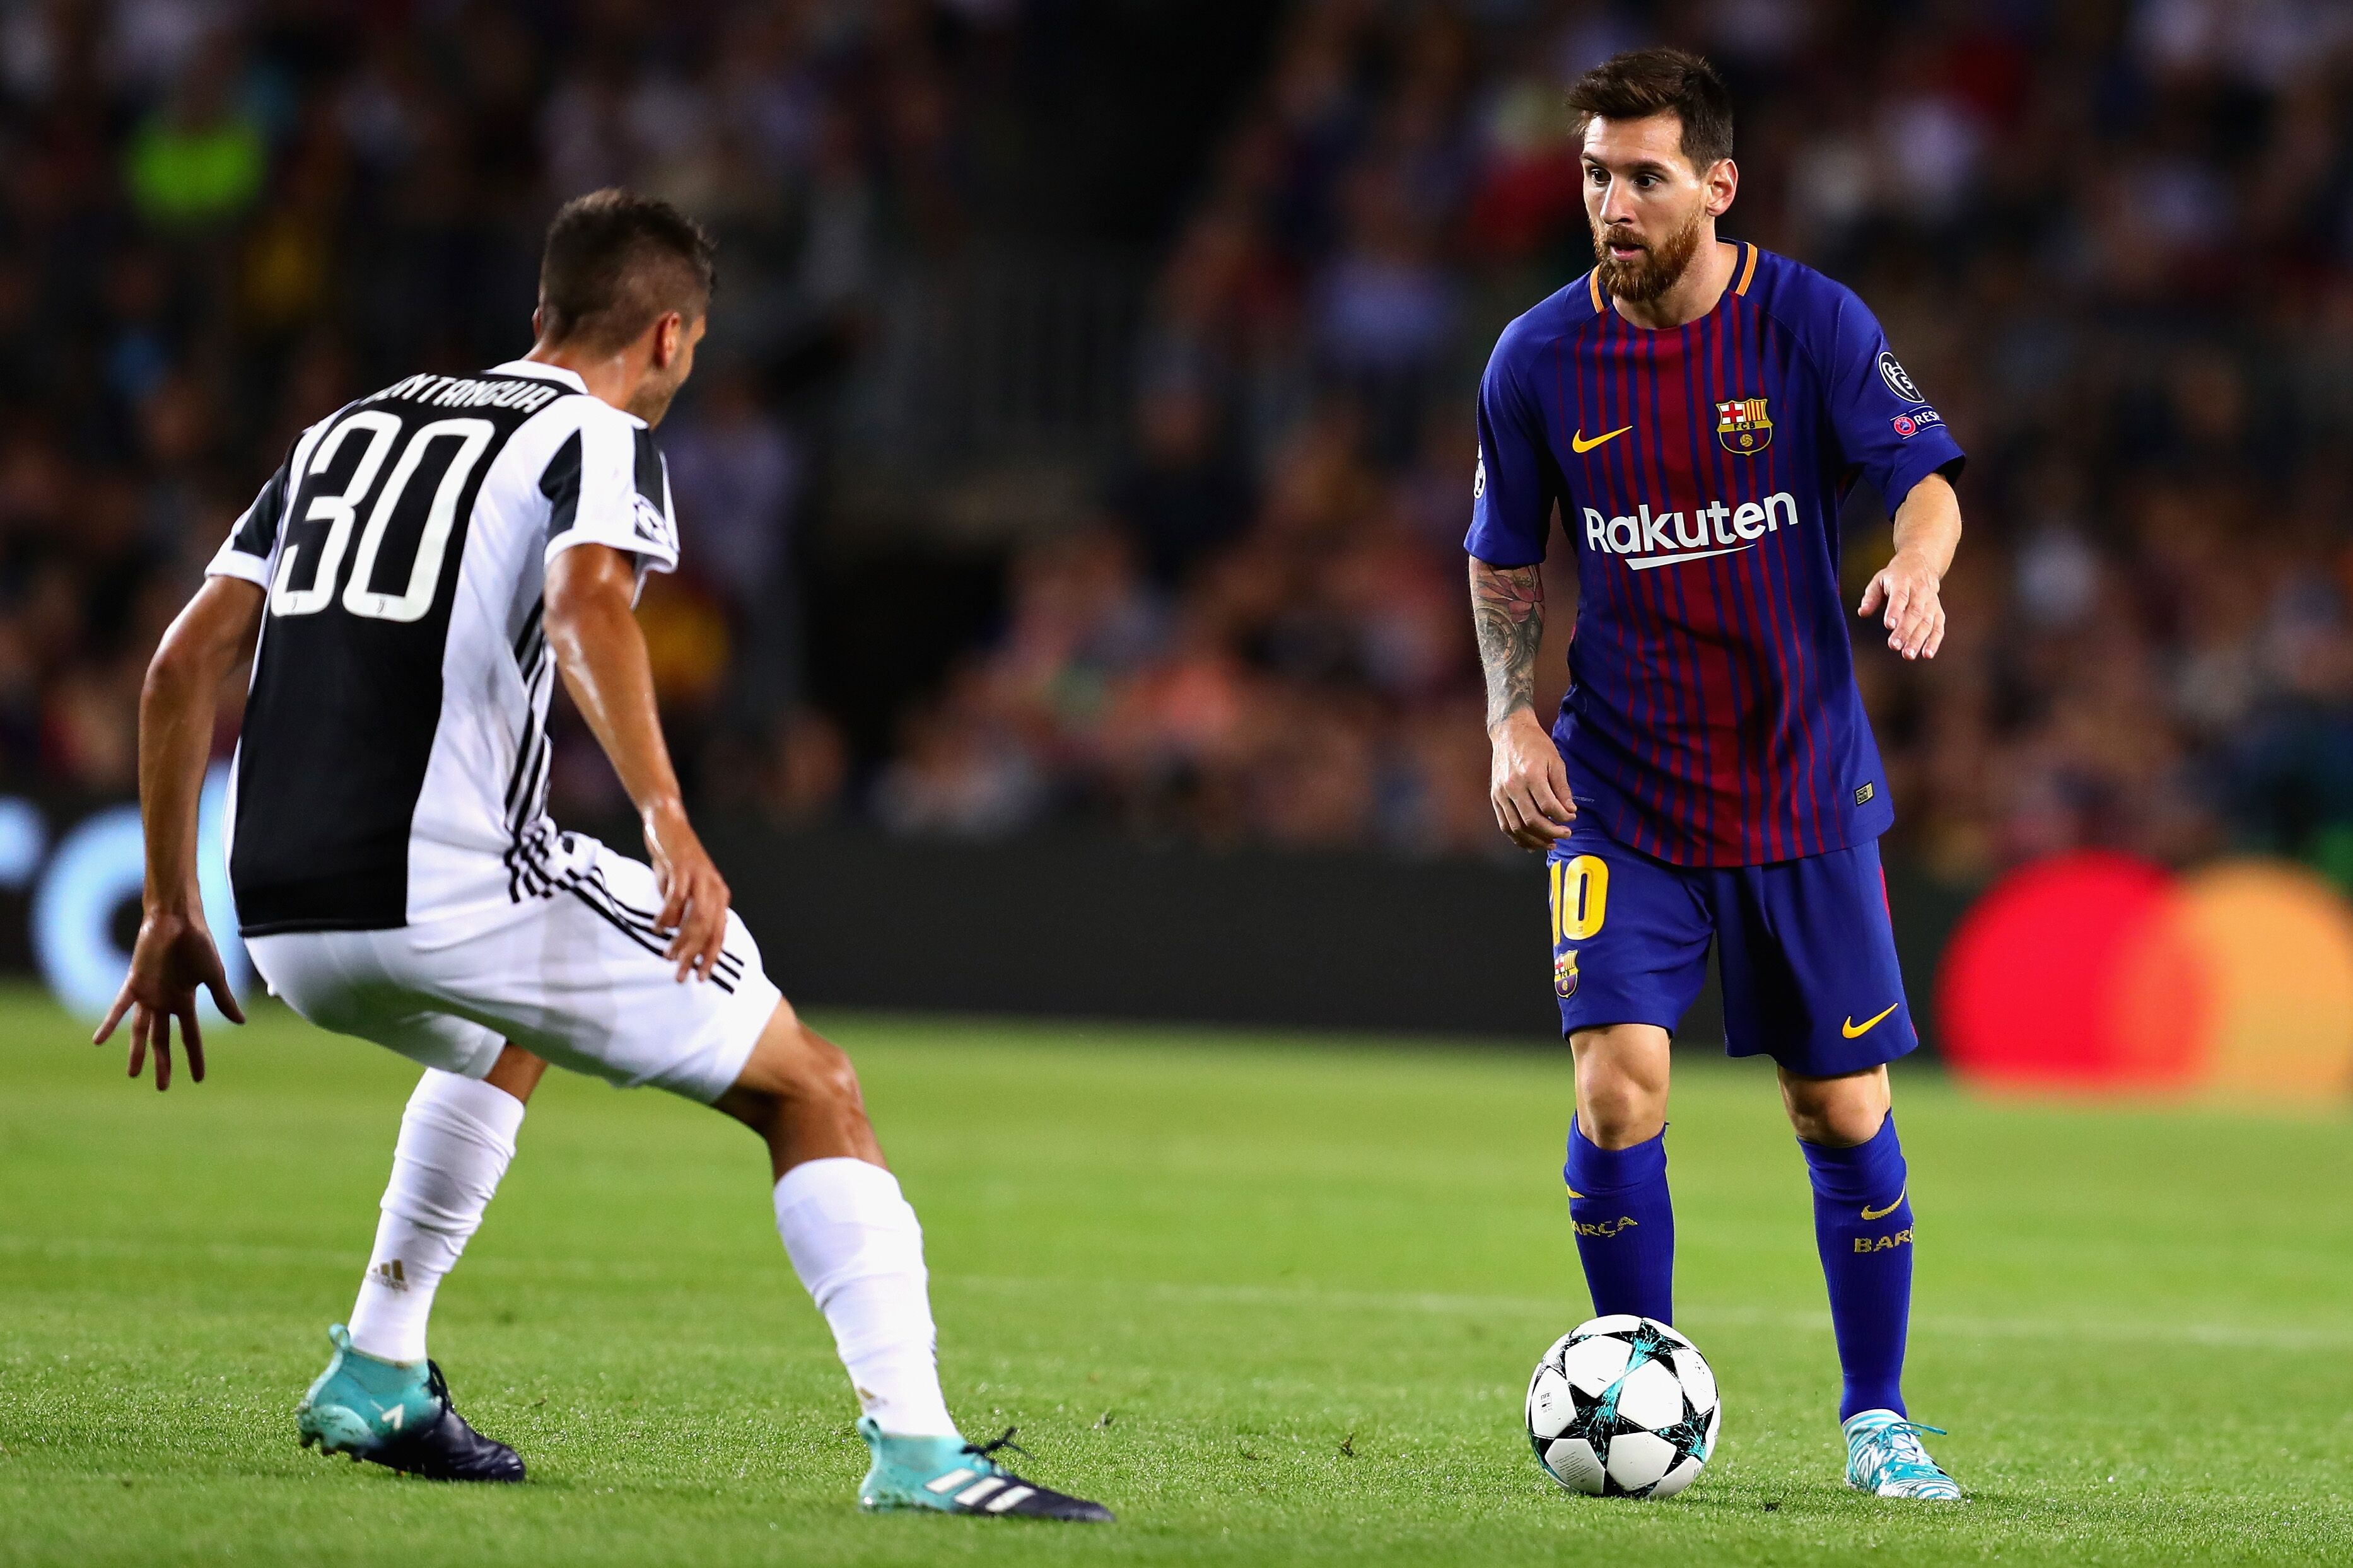 Lionel Messi gives Barcelona the lead against Juventus (Video)